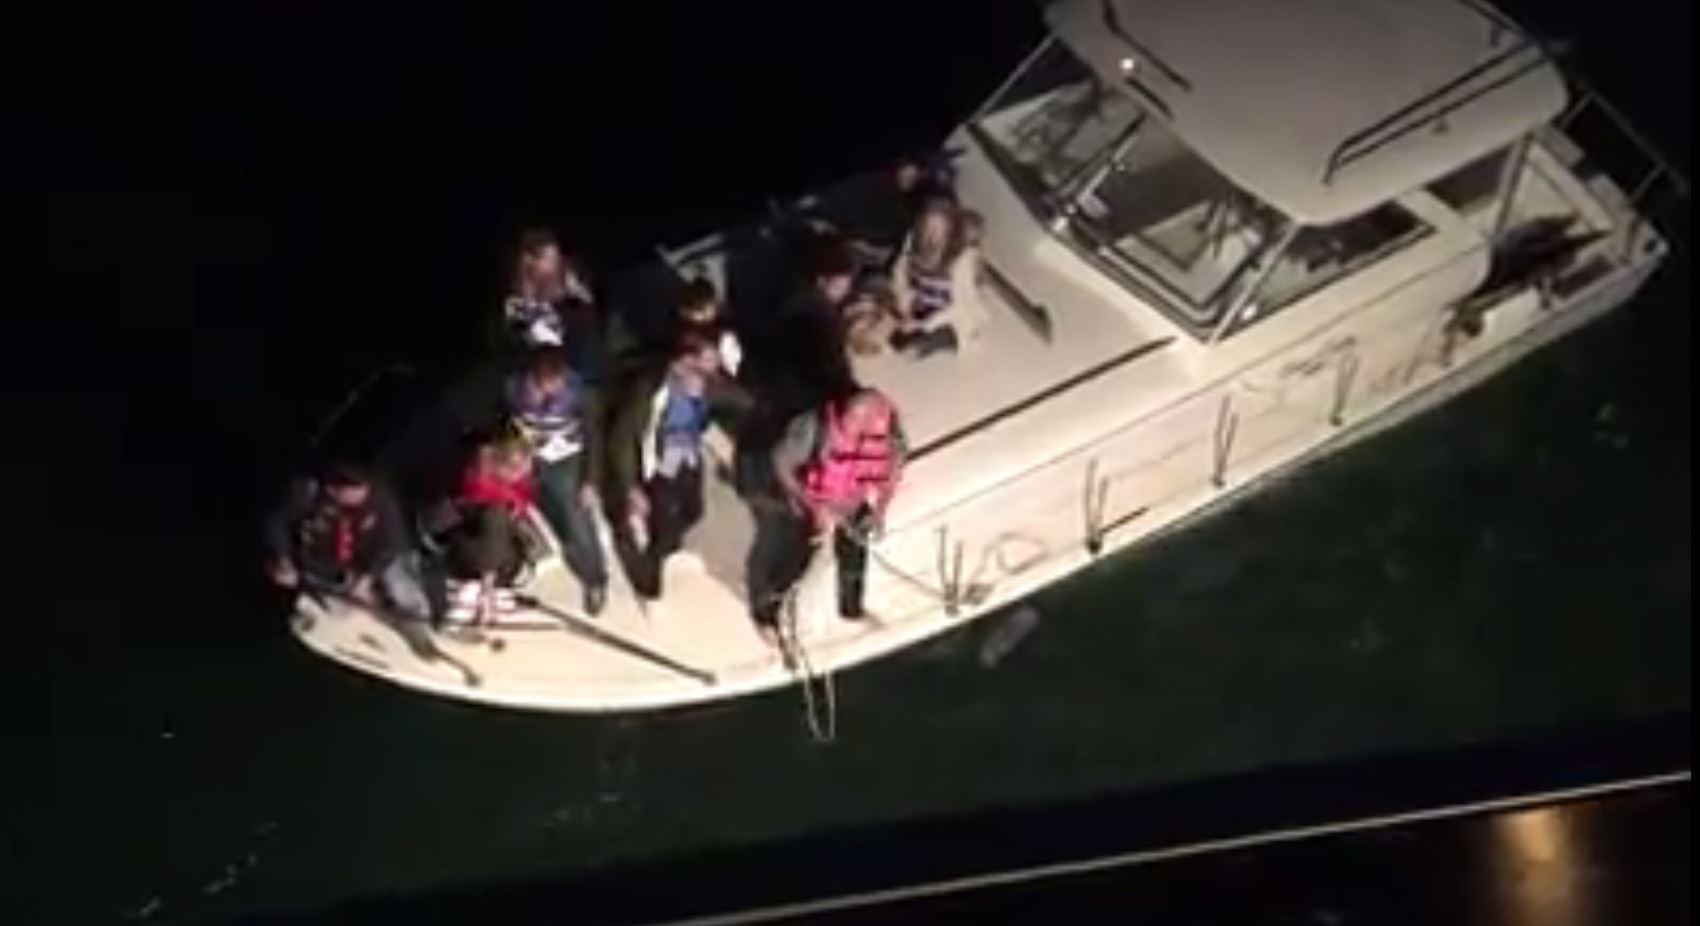 An Alcatraz Island ferry rescued 10 people on board a sinking boat in the San Francisco Bay on Thursday.